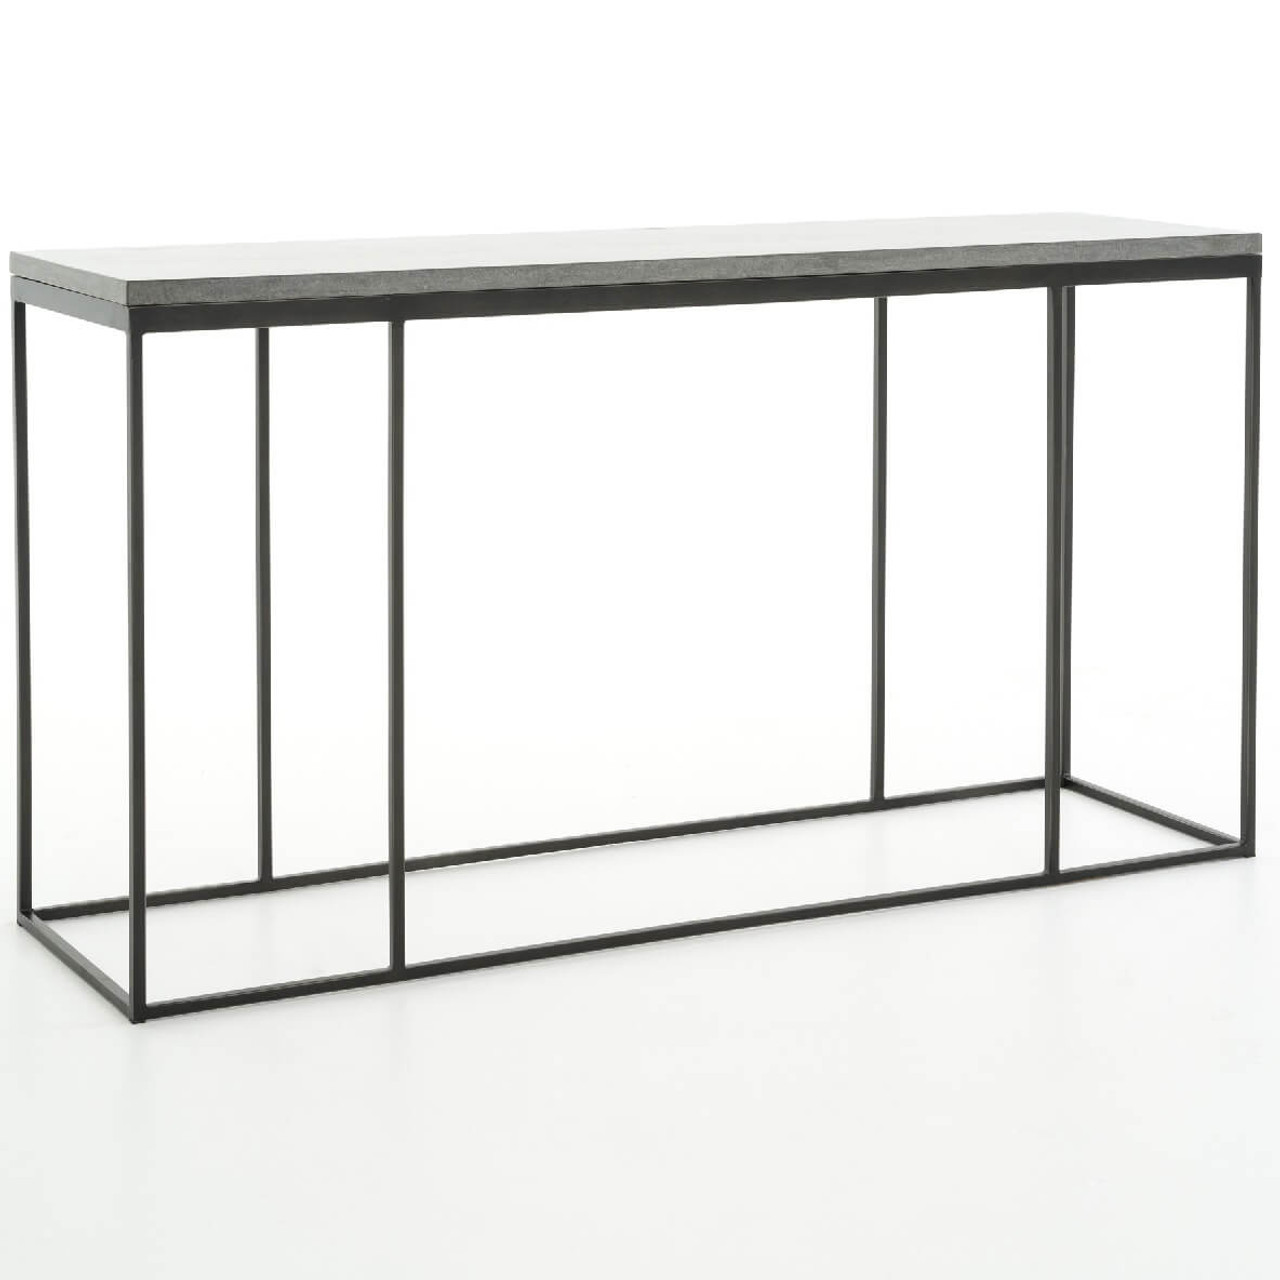 French industrial iron bluestone top console table 60 zin home